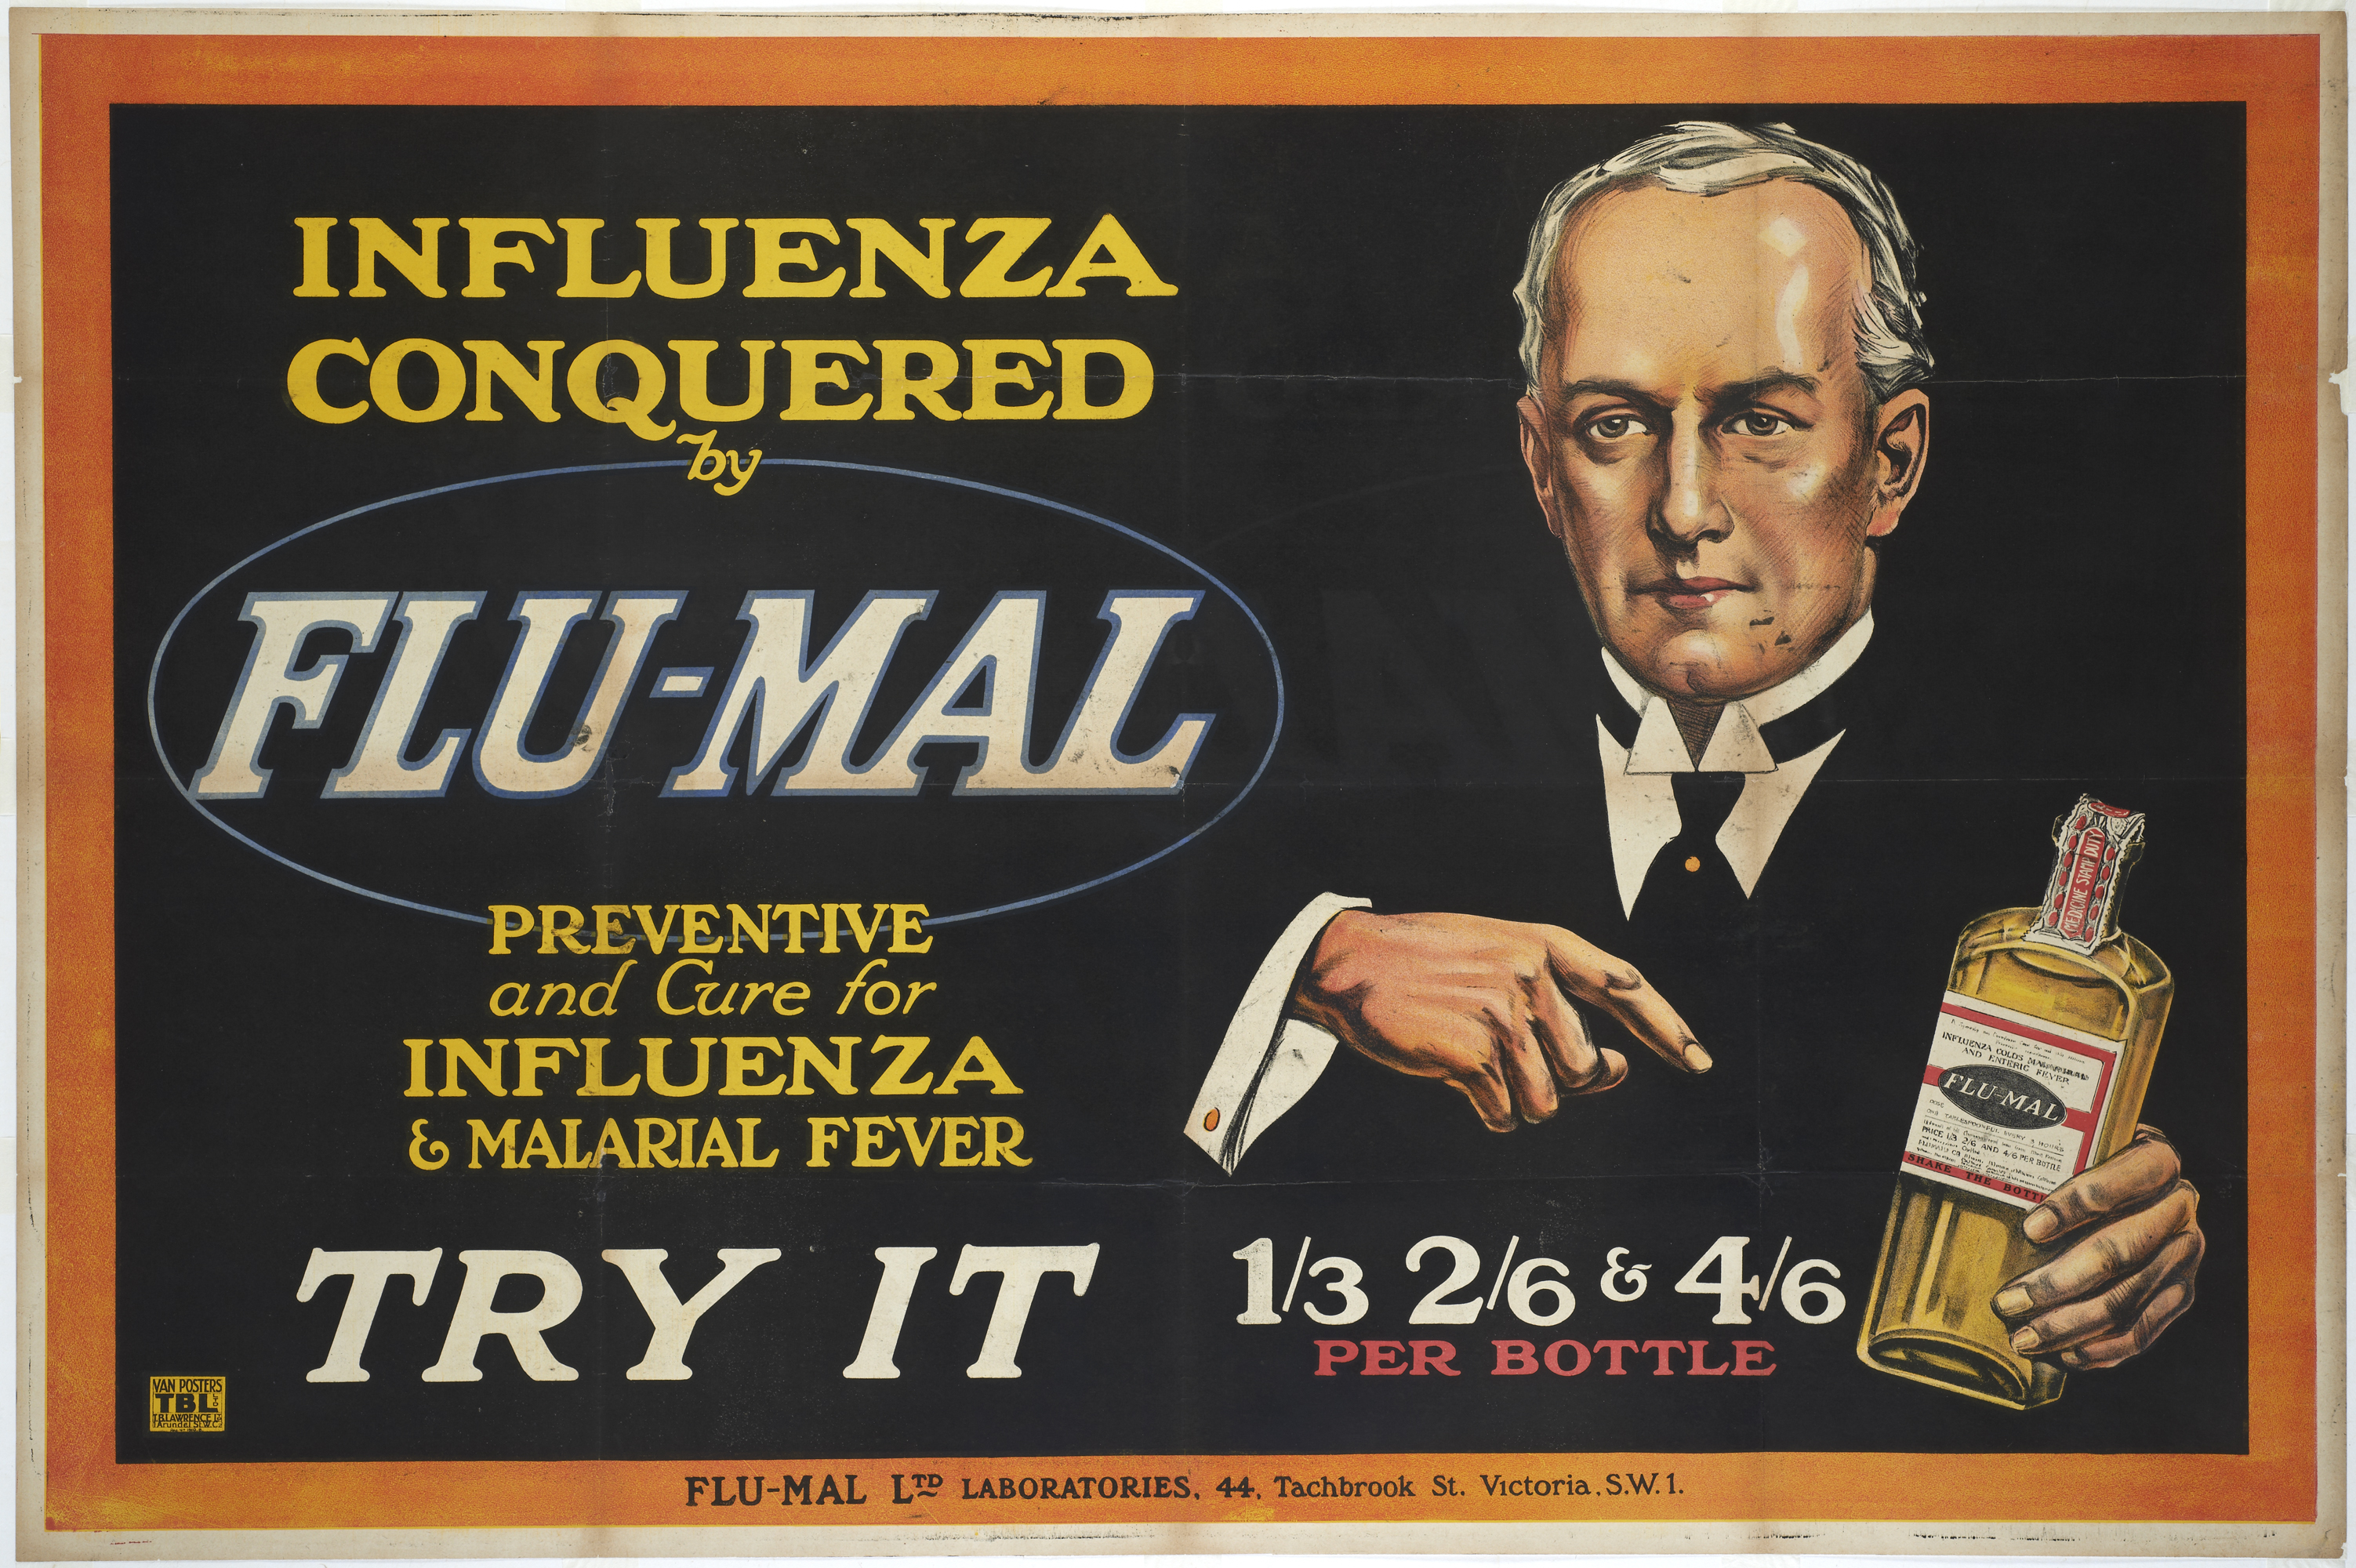 Influenza conquered by Flu-Mal. Advertising Poster